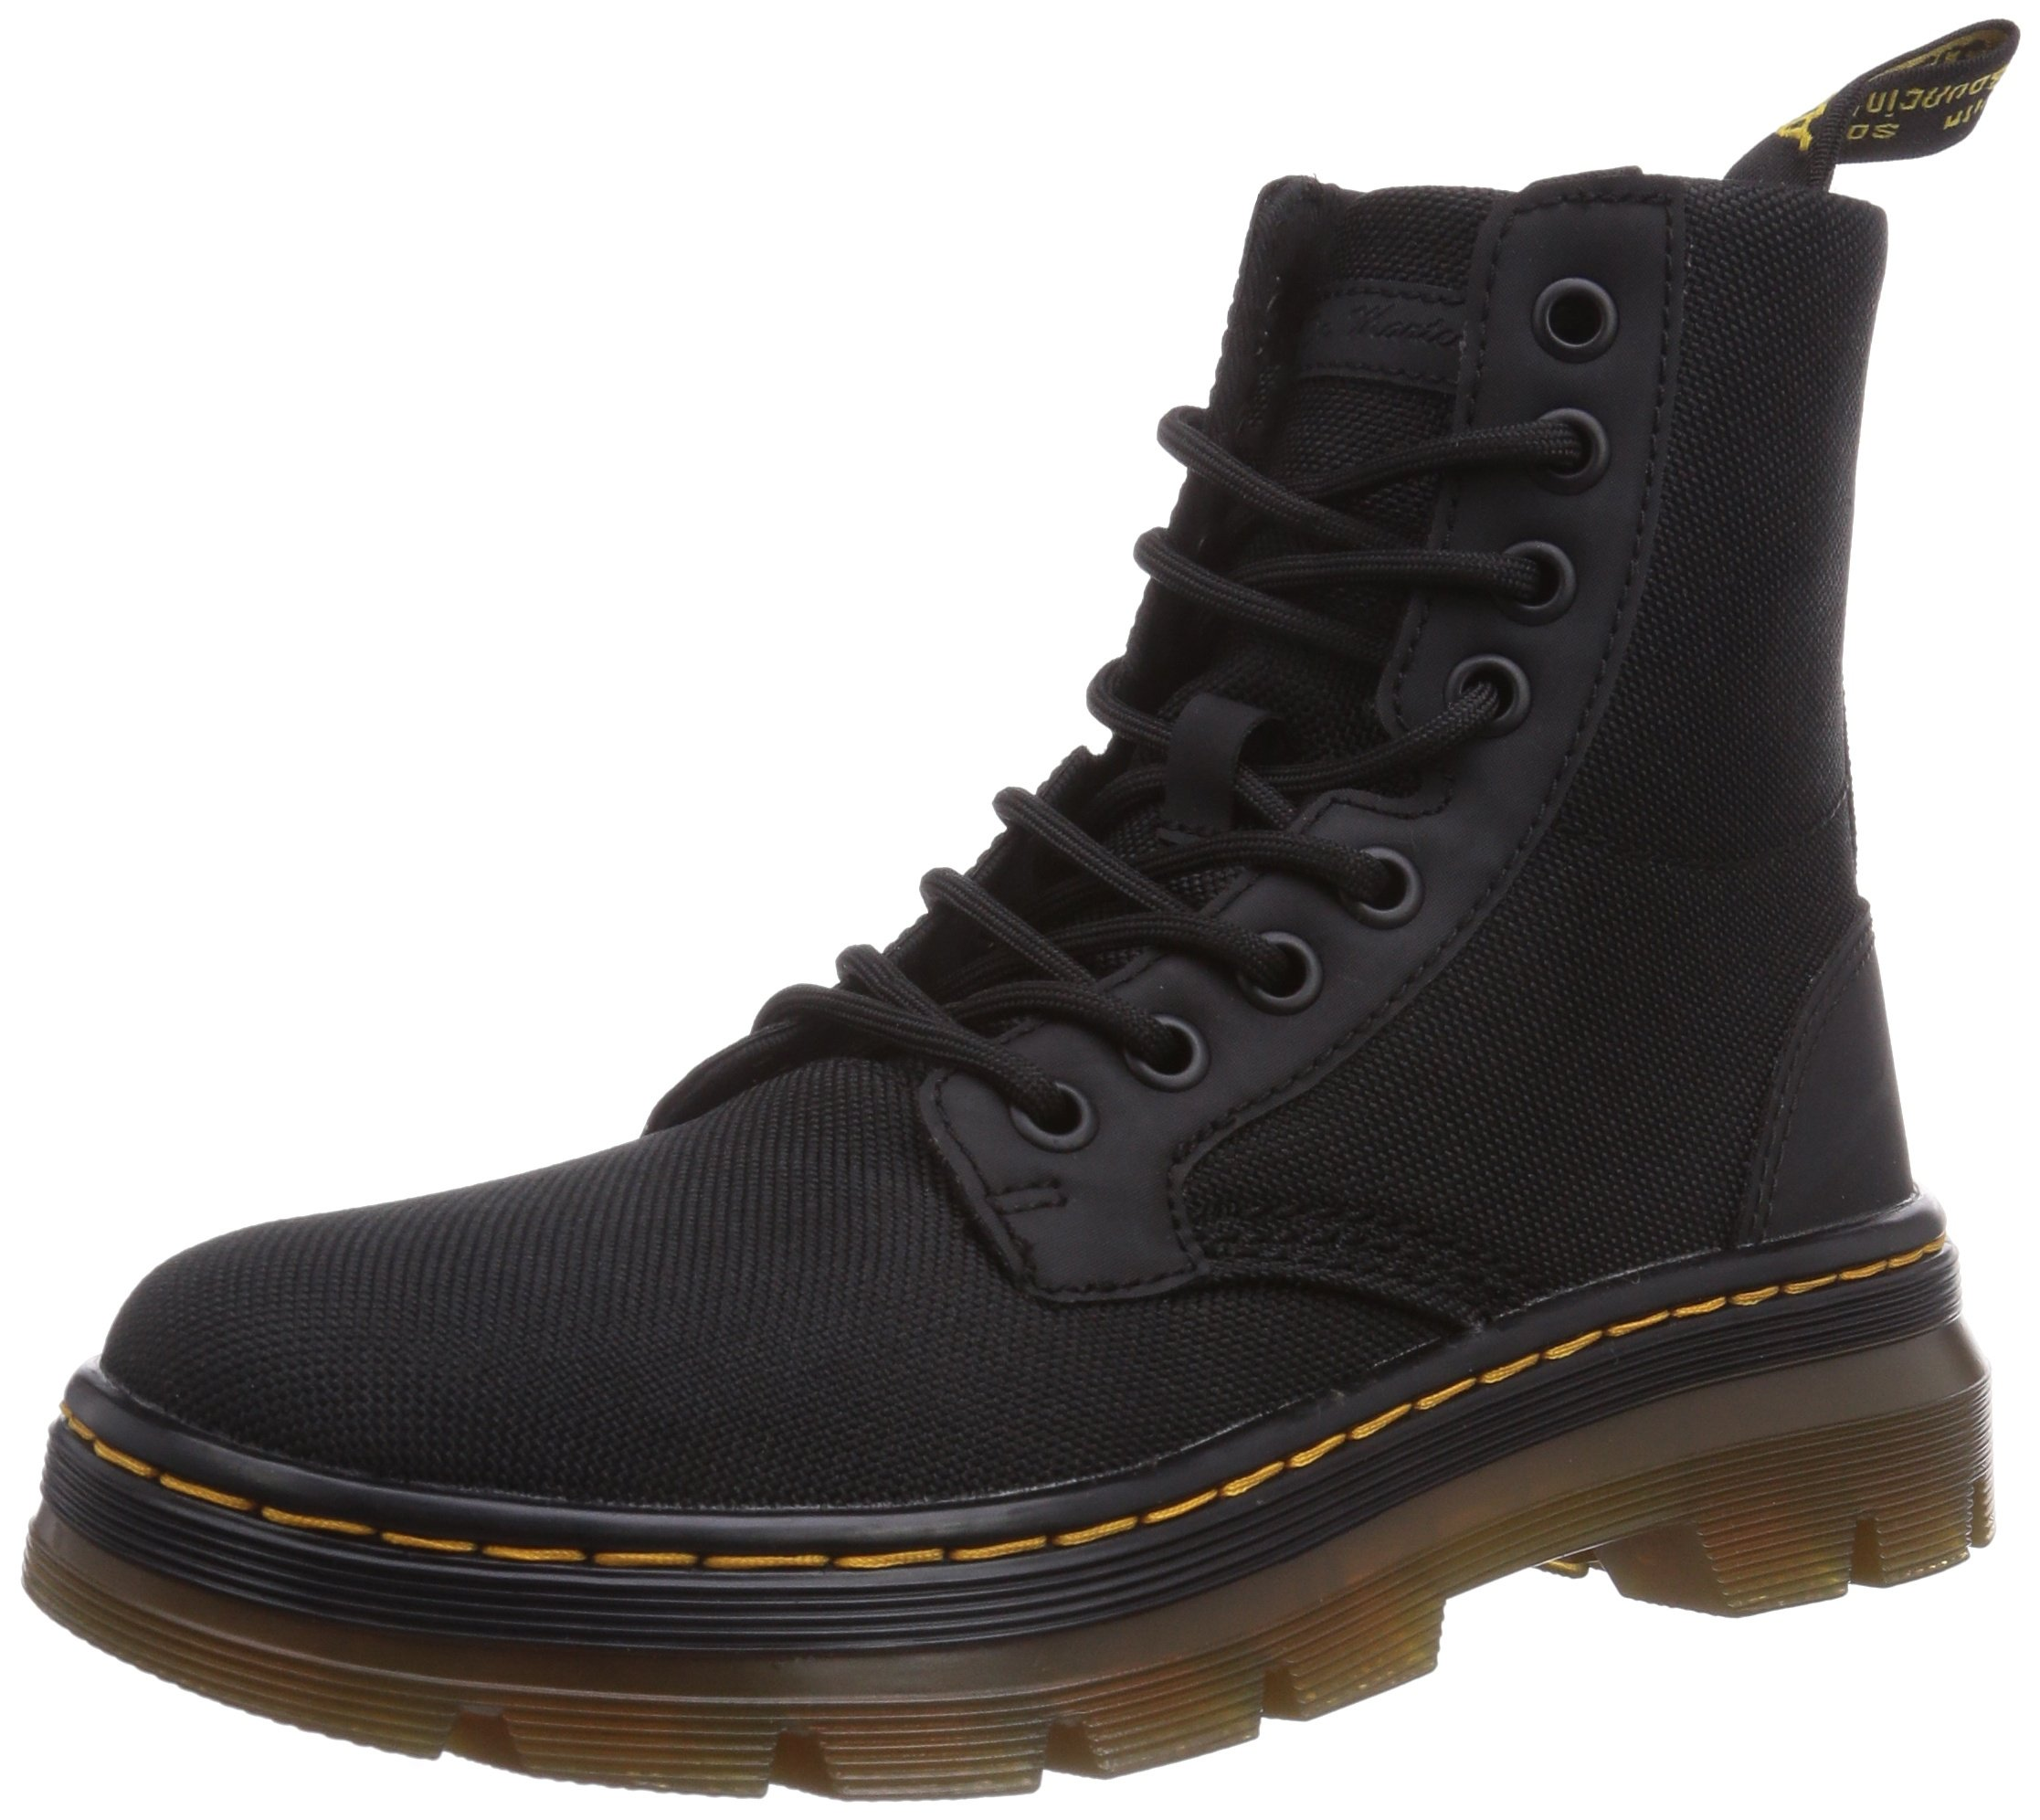 Dr. Martens Men's Combs Nylon Combat Boot, Black, 10 M US